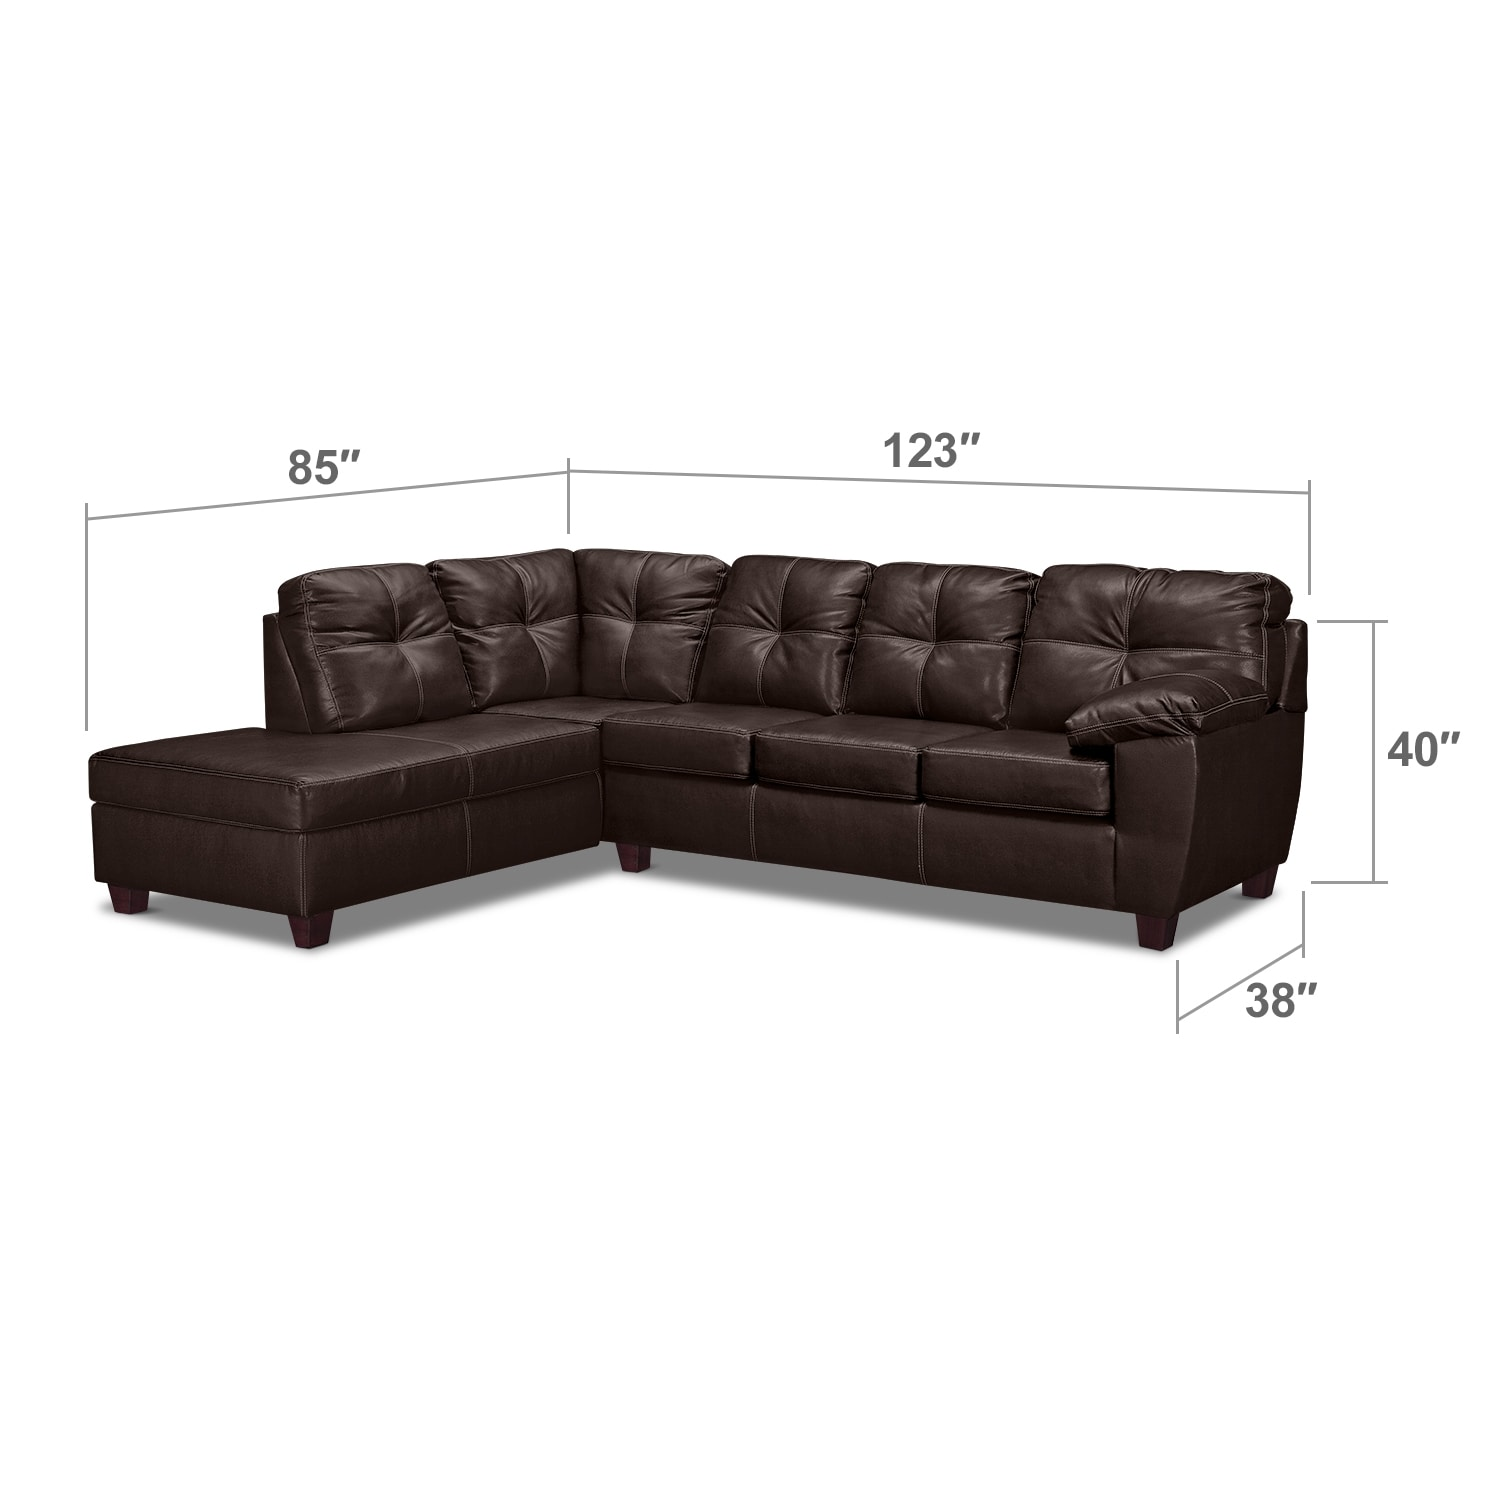 Living Room Furniture - Rialto Brown 2 Pc. Sectional with Left-Facing Chaise